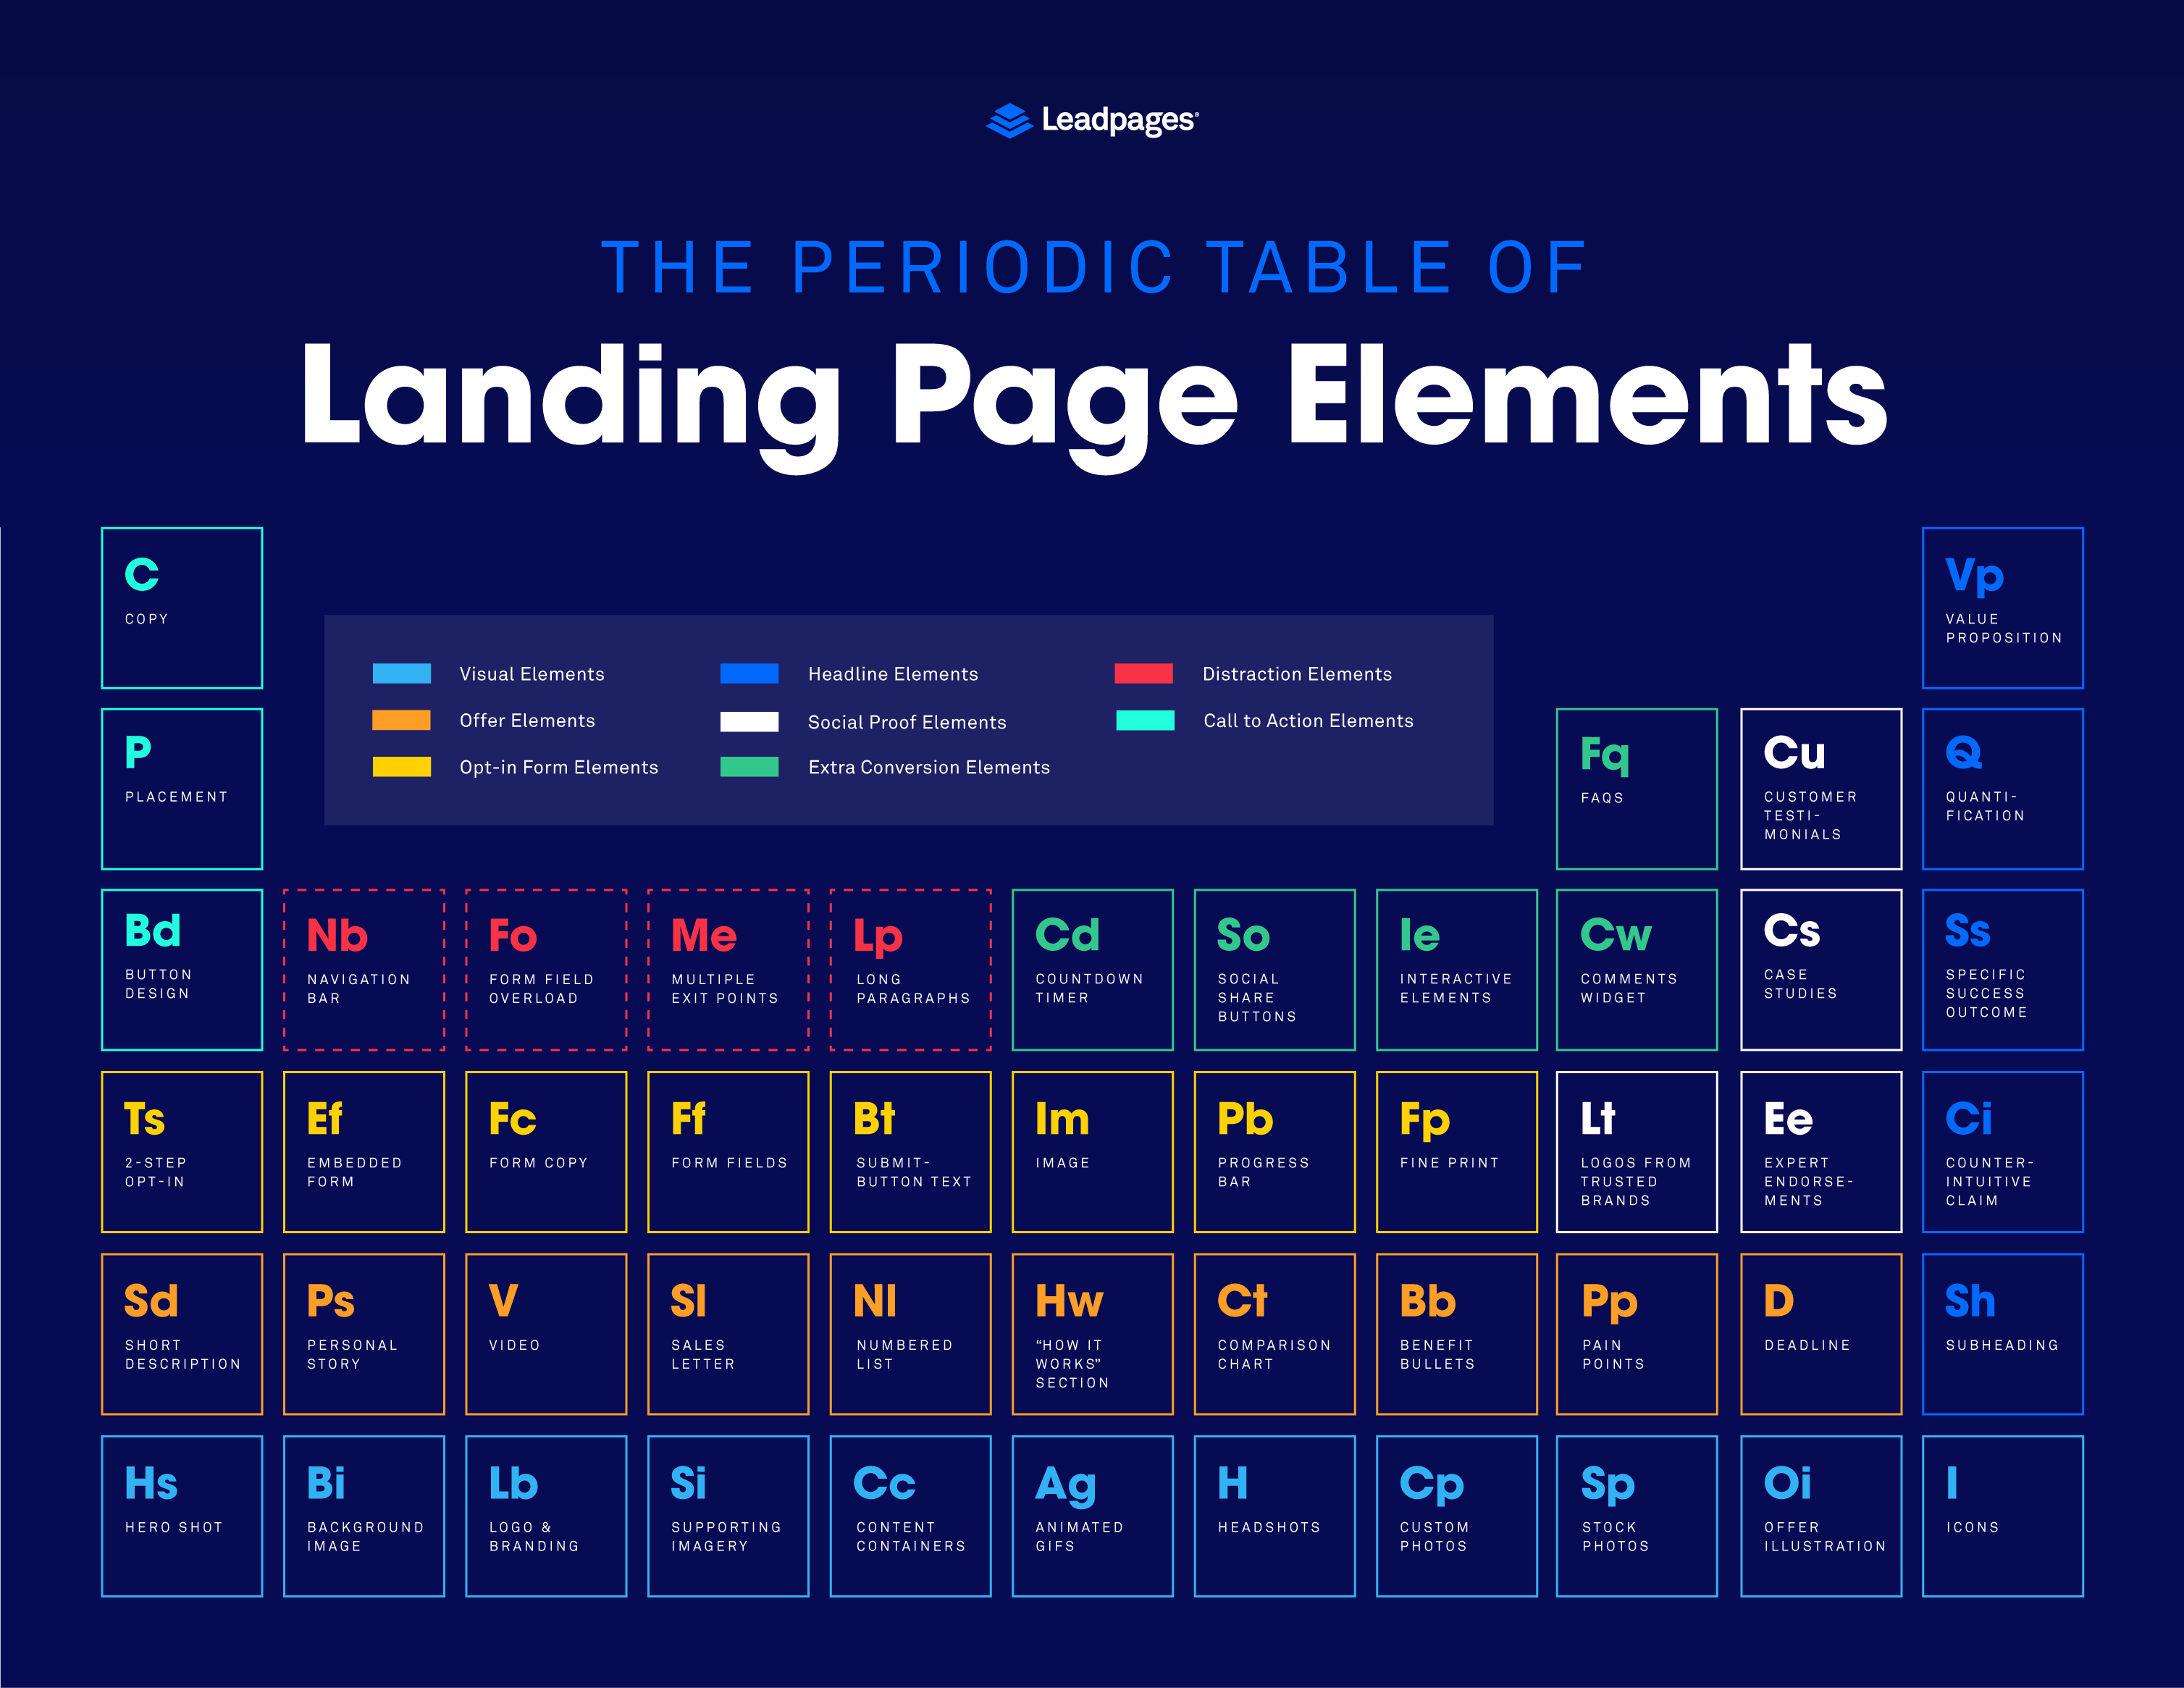 how to use this periodic table of landing page elements